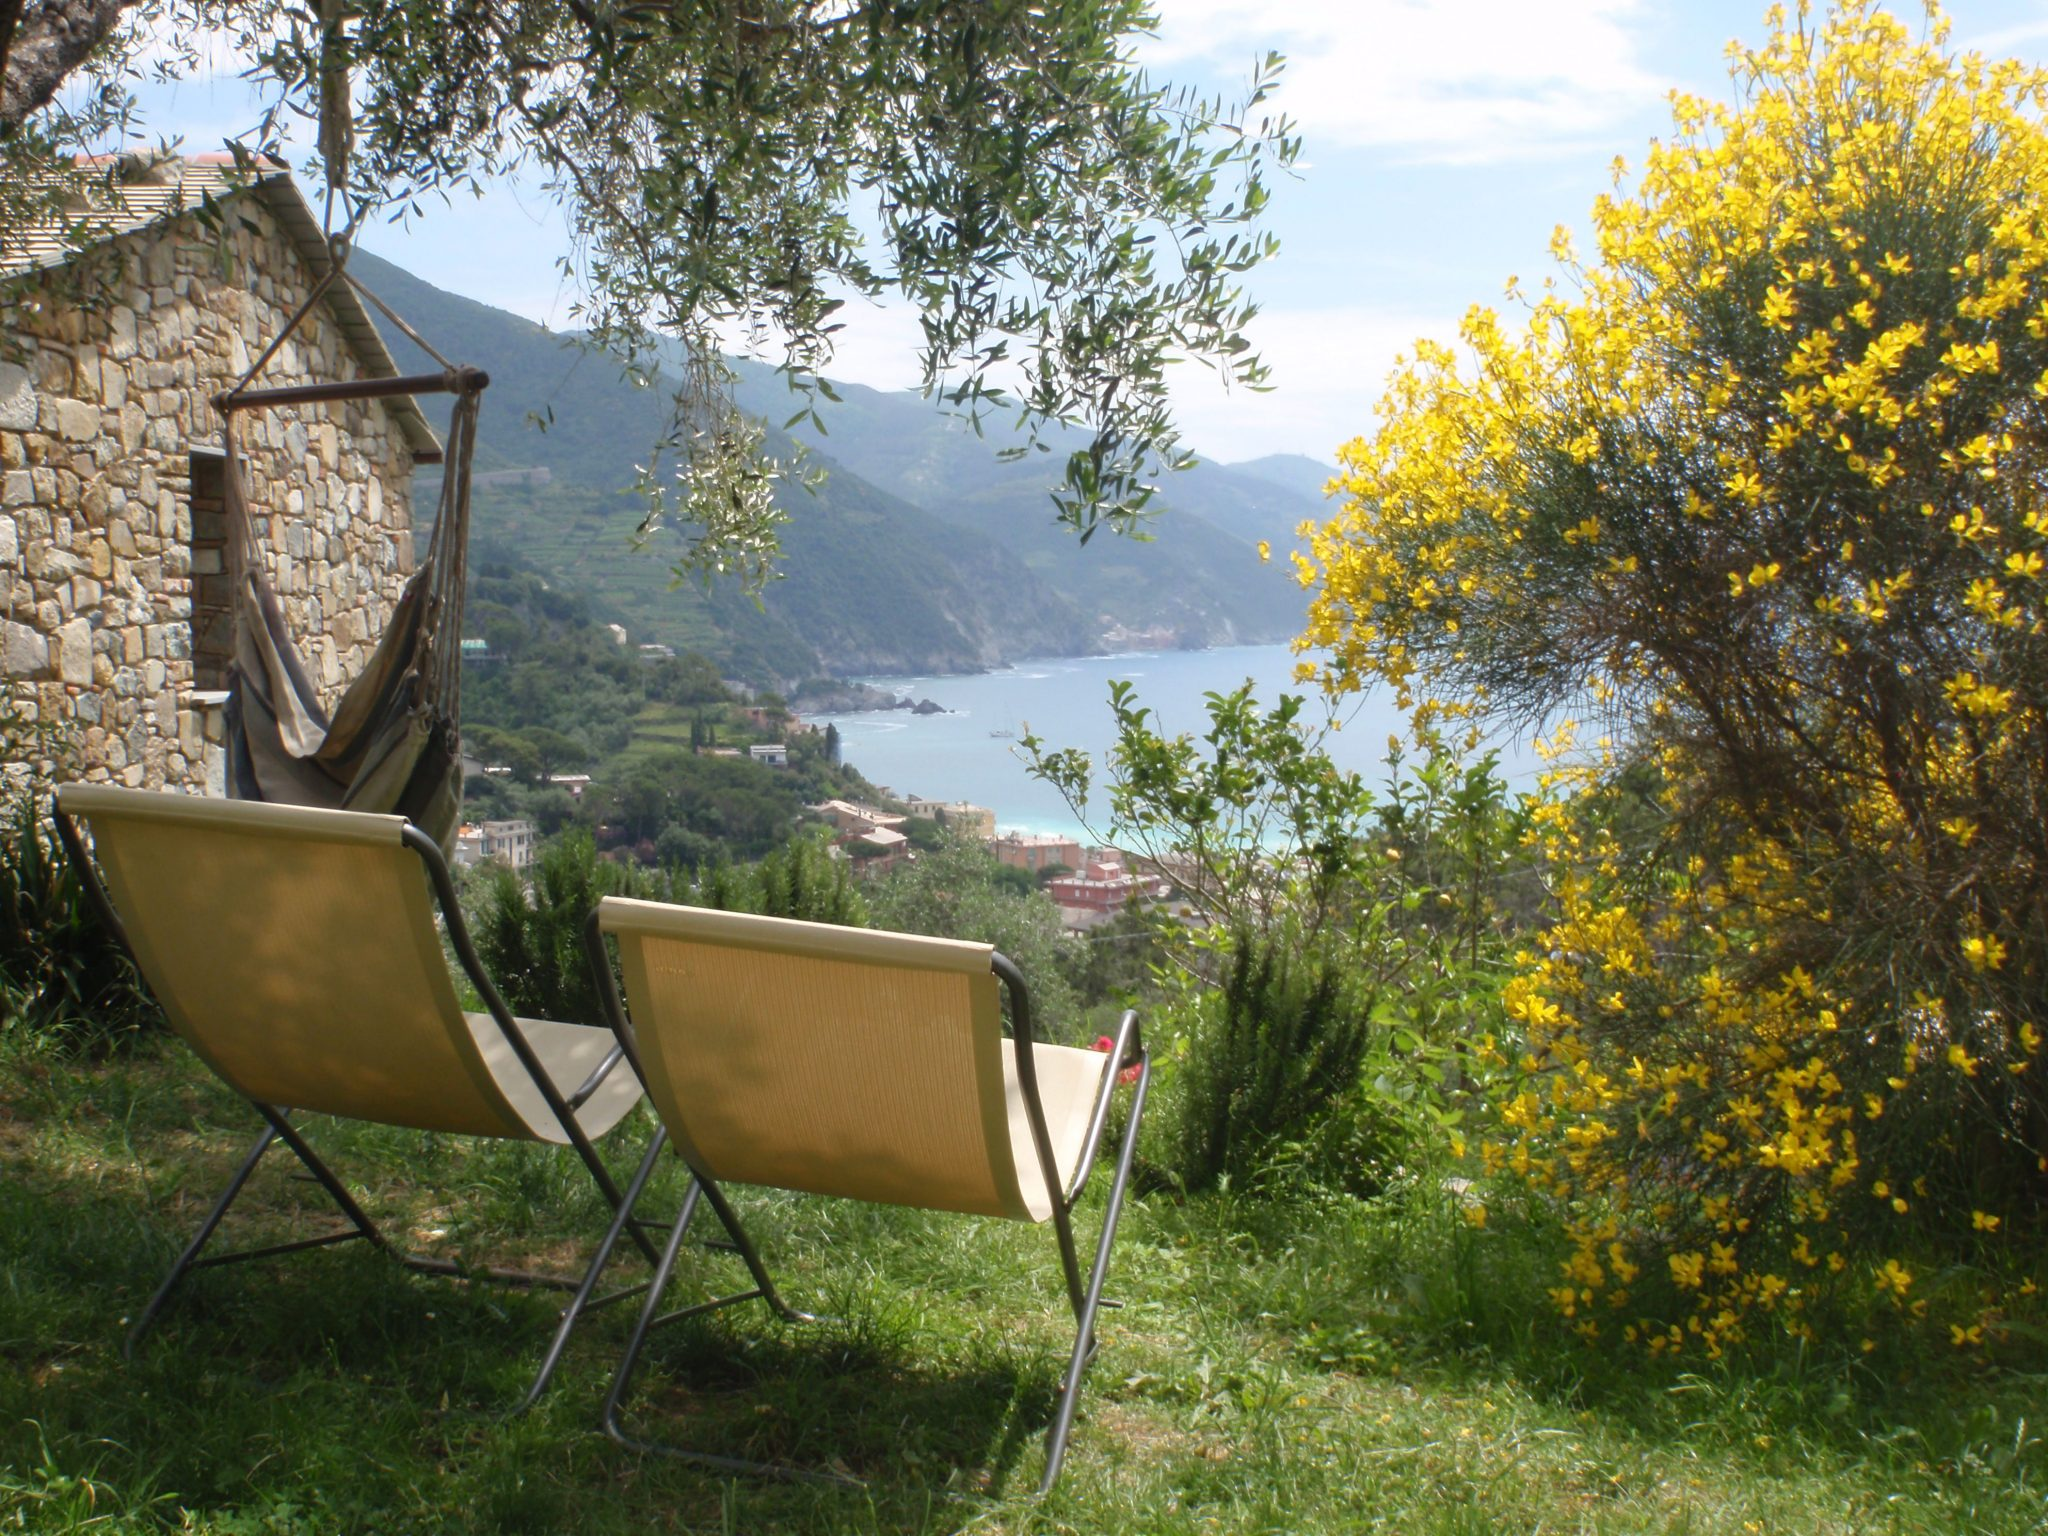 Charmind accommodation in Cinque Terre